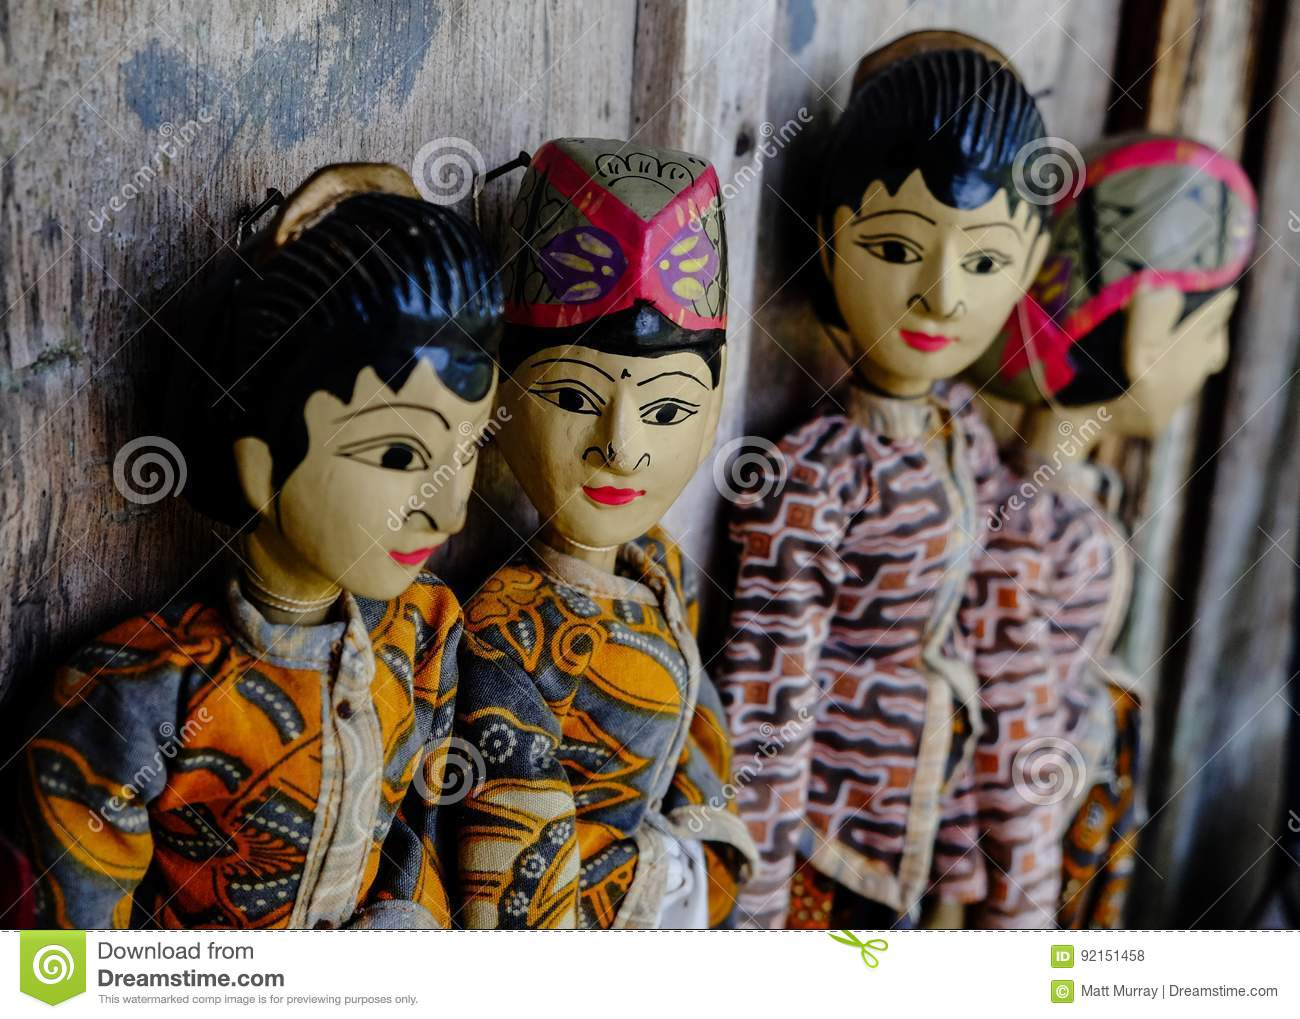 Download Four Traditional Javanese Wayang Golek Theatre Puppets Being Sold As Sourvenirs In Pawon, Java. Stock Photo - Image of theatre, made: 92151458